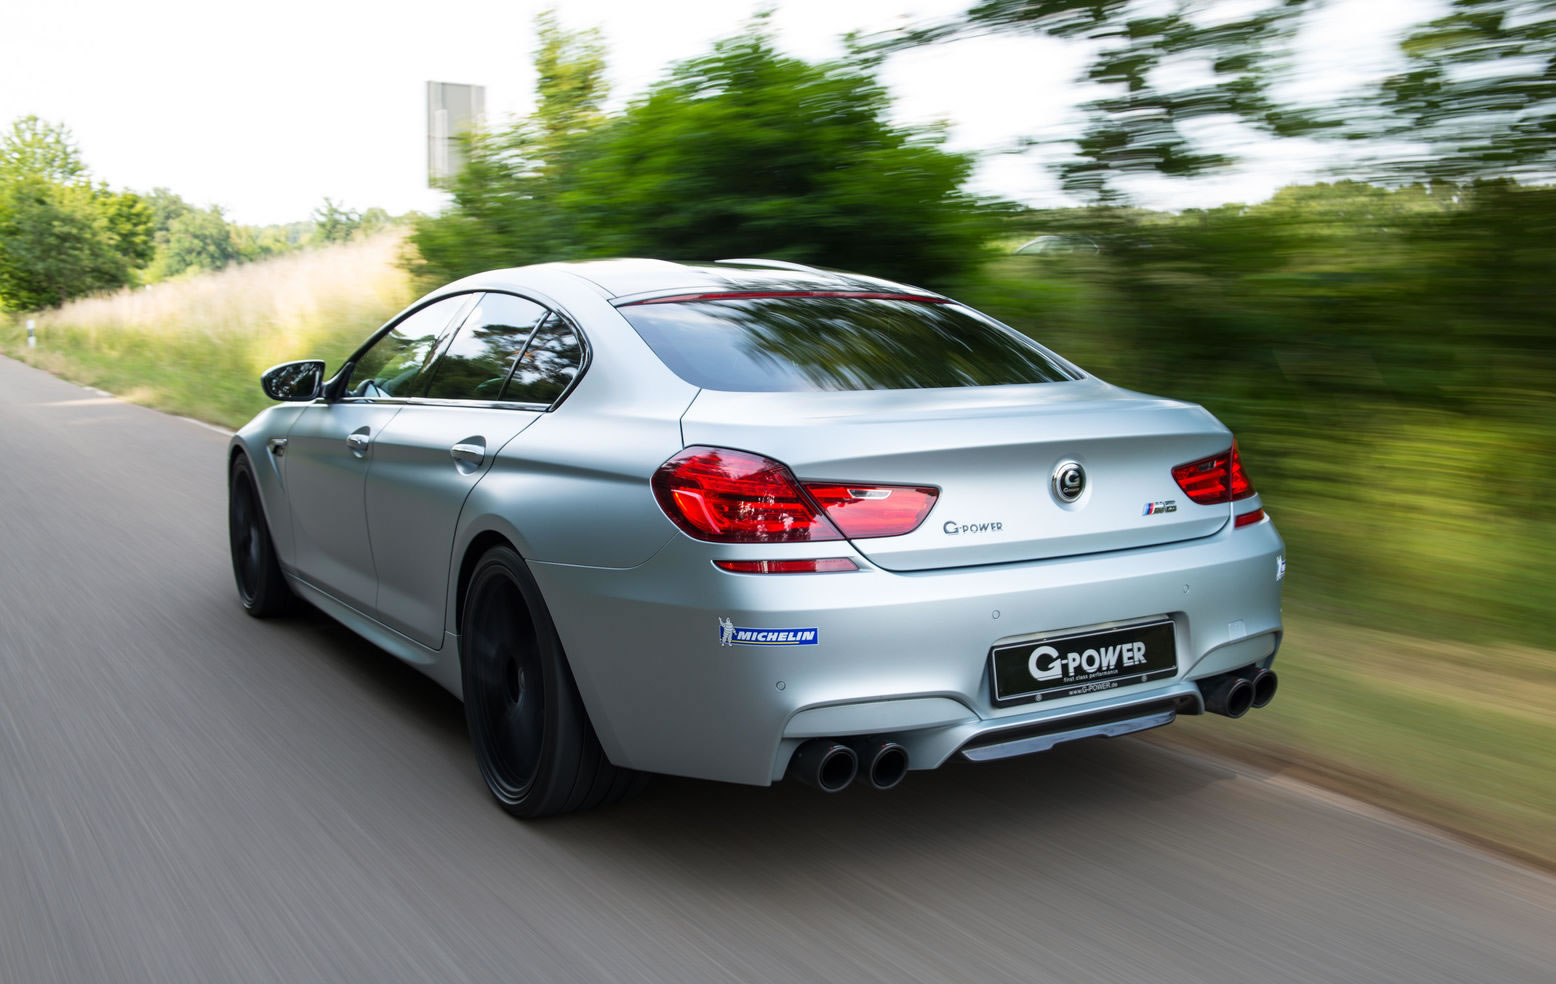 2014 Bmw M6 Gran Coupe By G Power Photos Specs And Review